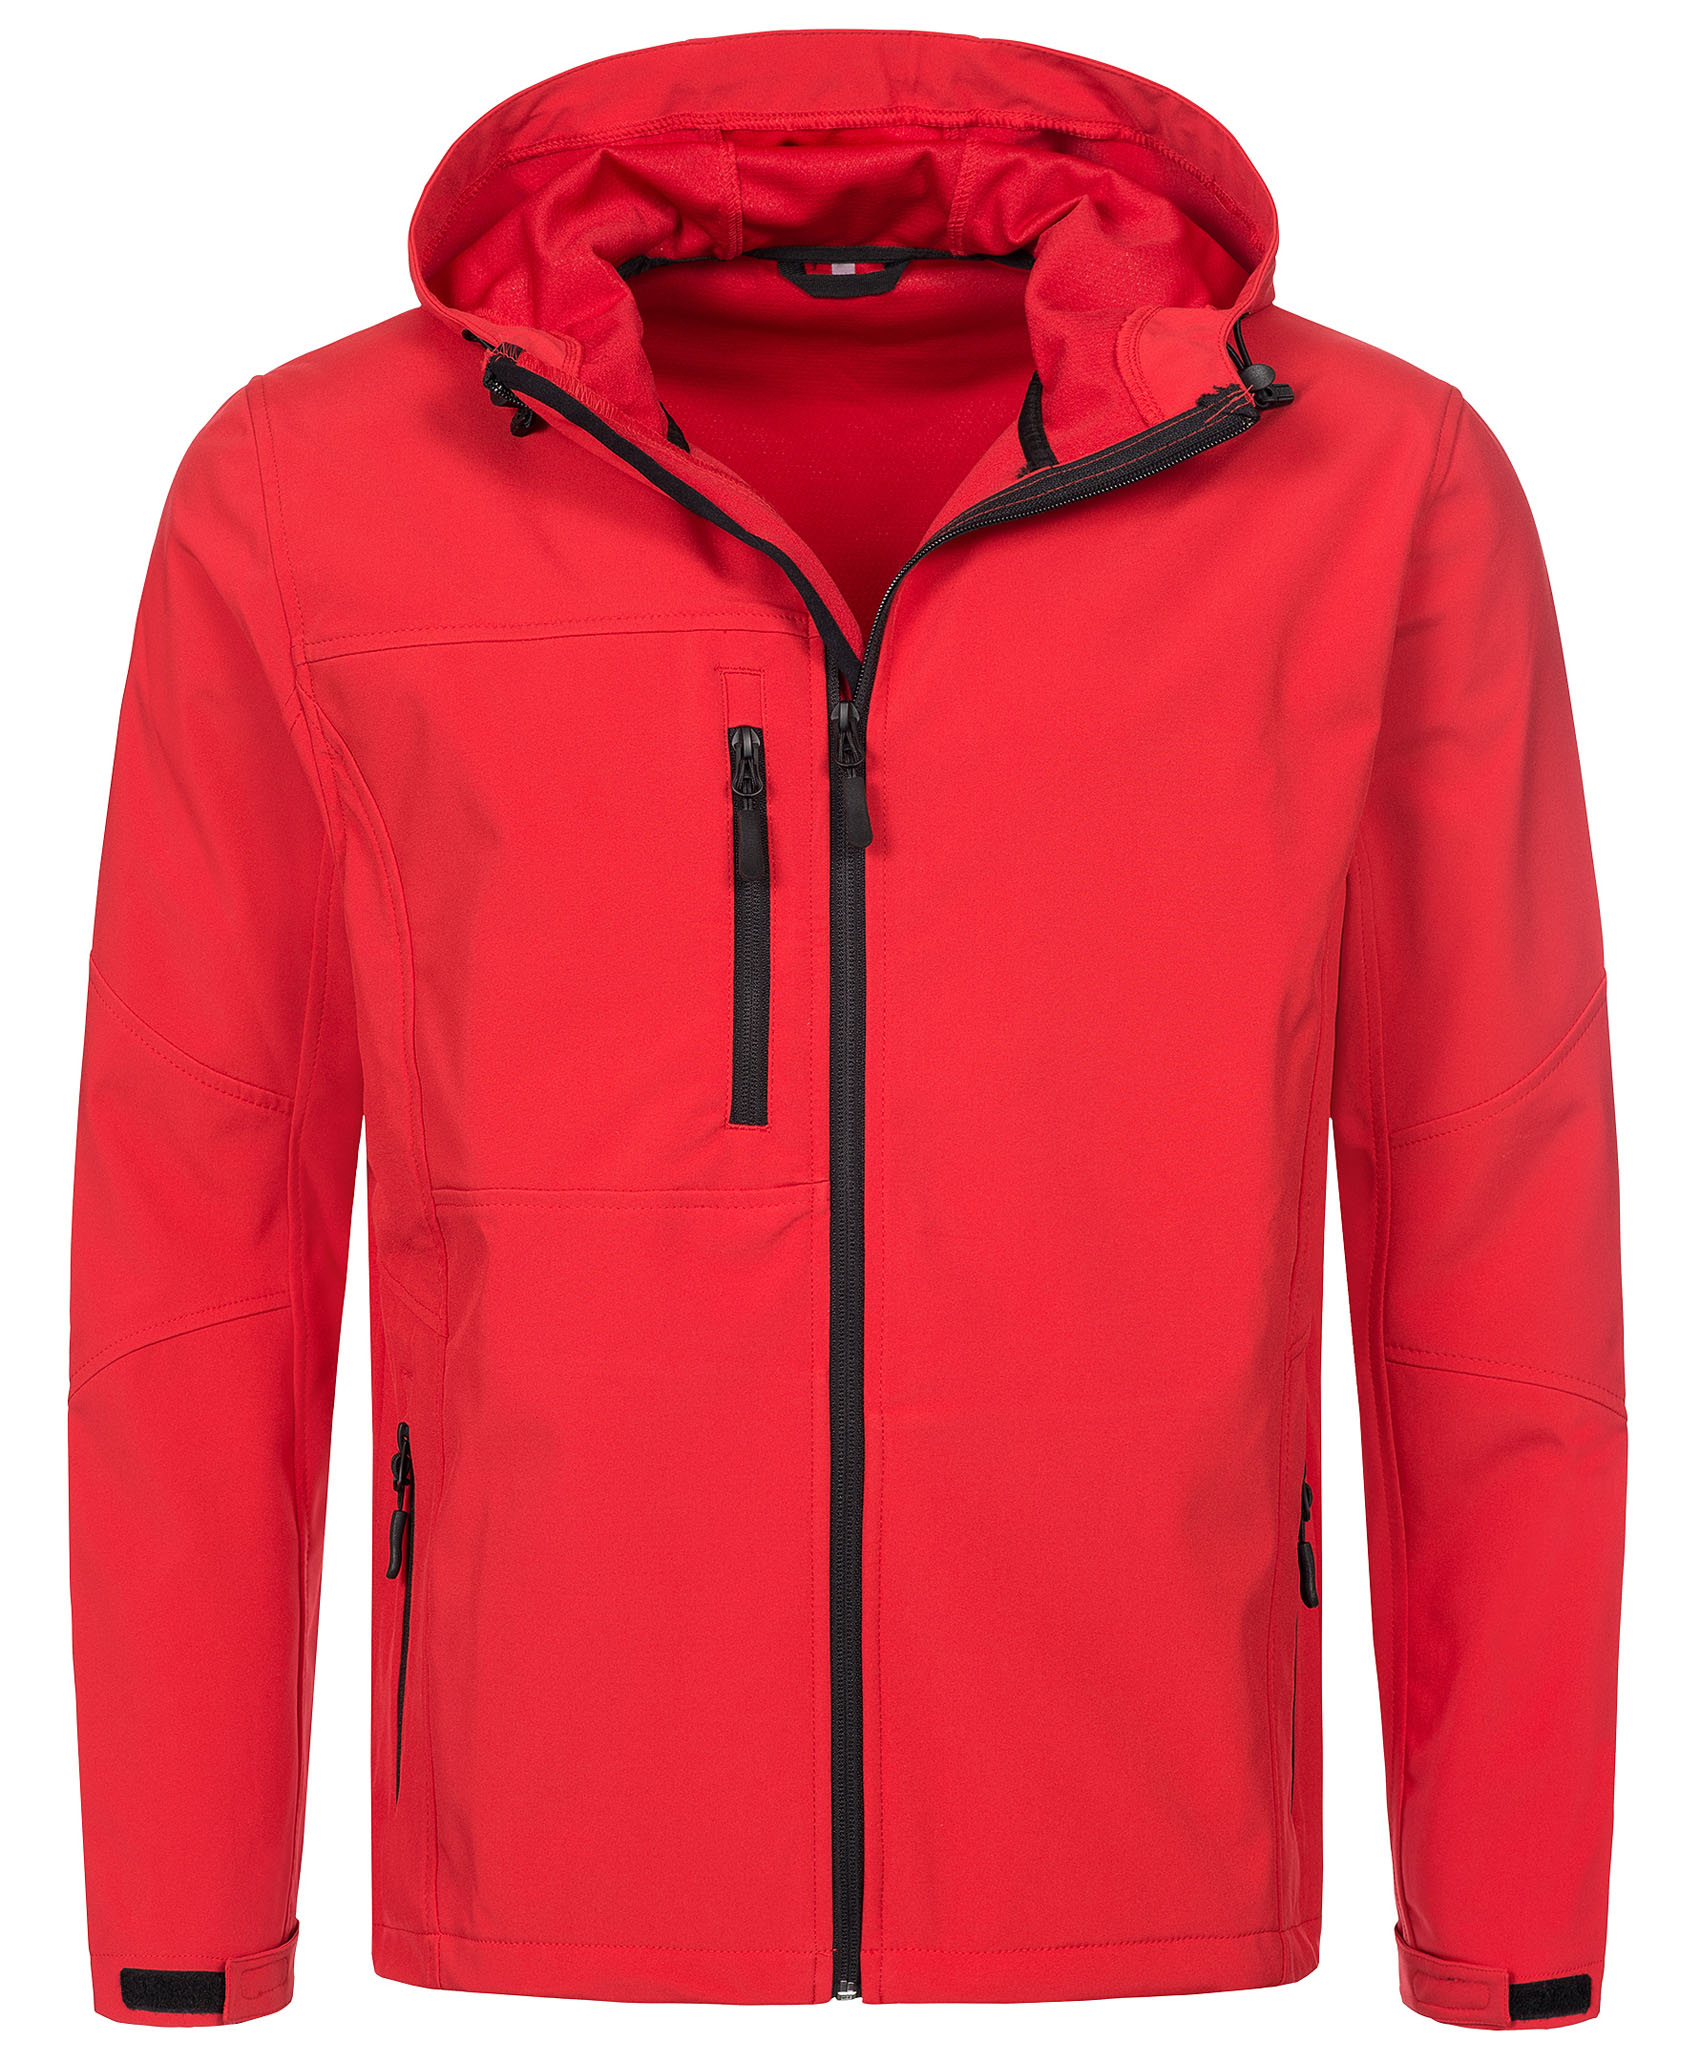 Stedman Jacket Hooded Softshell for him Crimson Red XXL